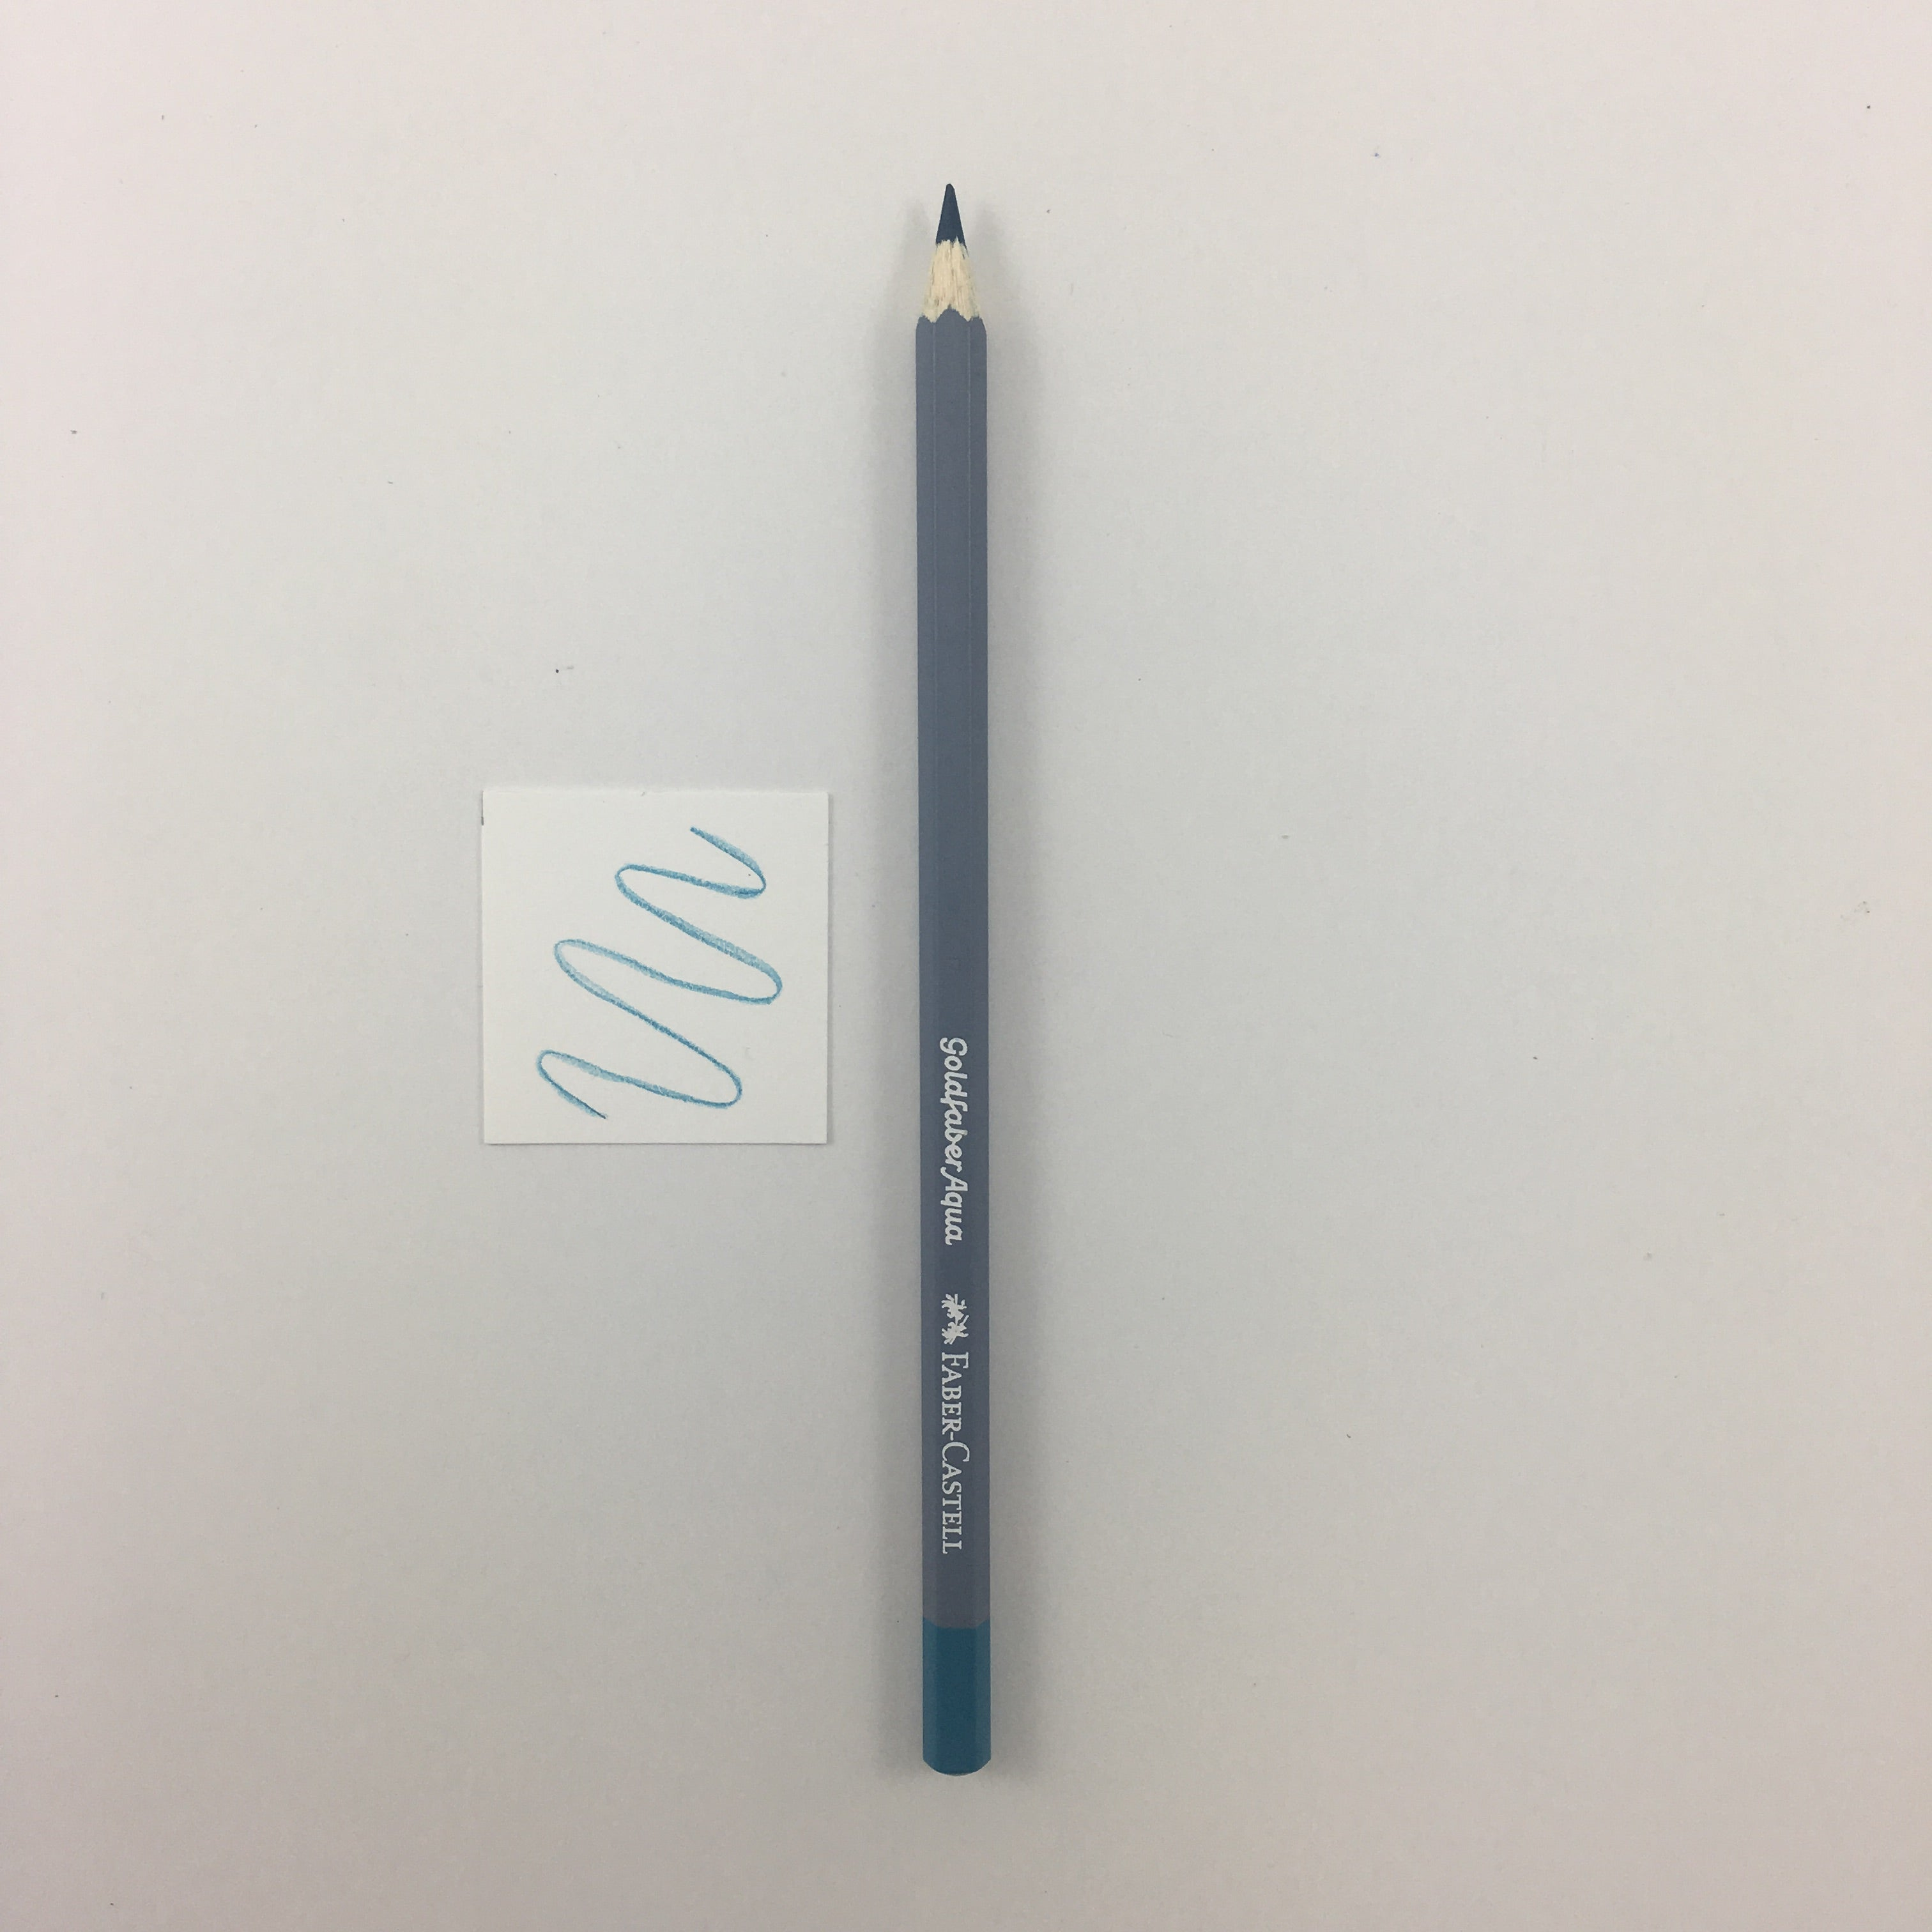 Faber-Castell Goldfaber Aqua Watercolor Pencils - Individuals - 151 - Helioblue-Reddish by Faber-Castell - K. A. Artist Shop